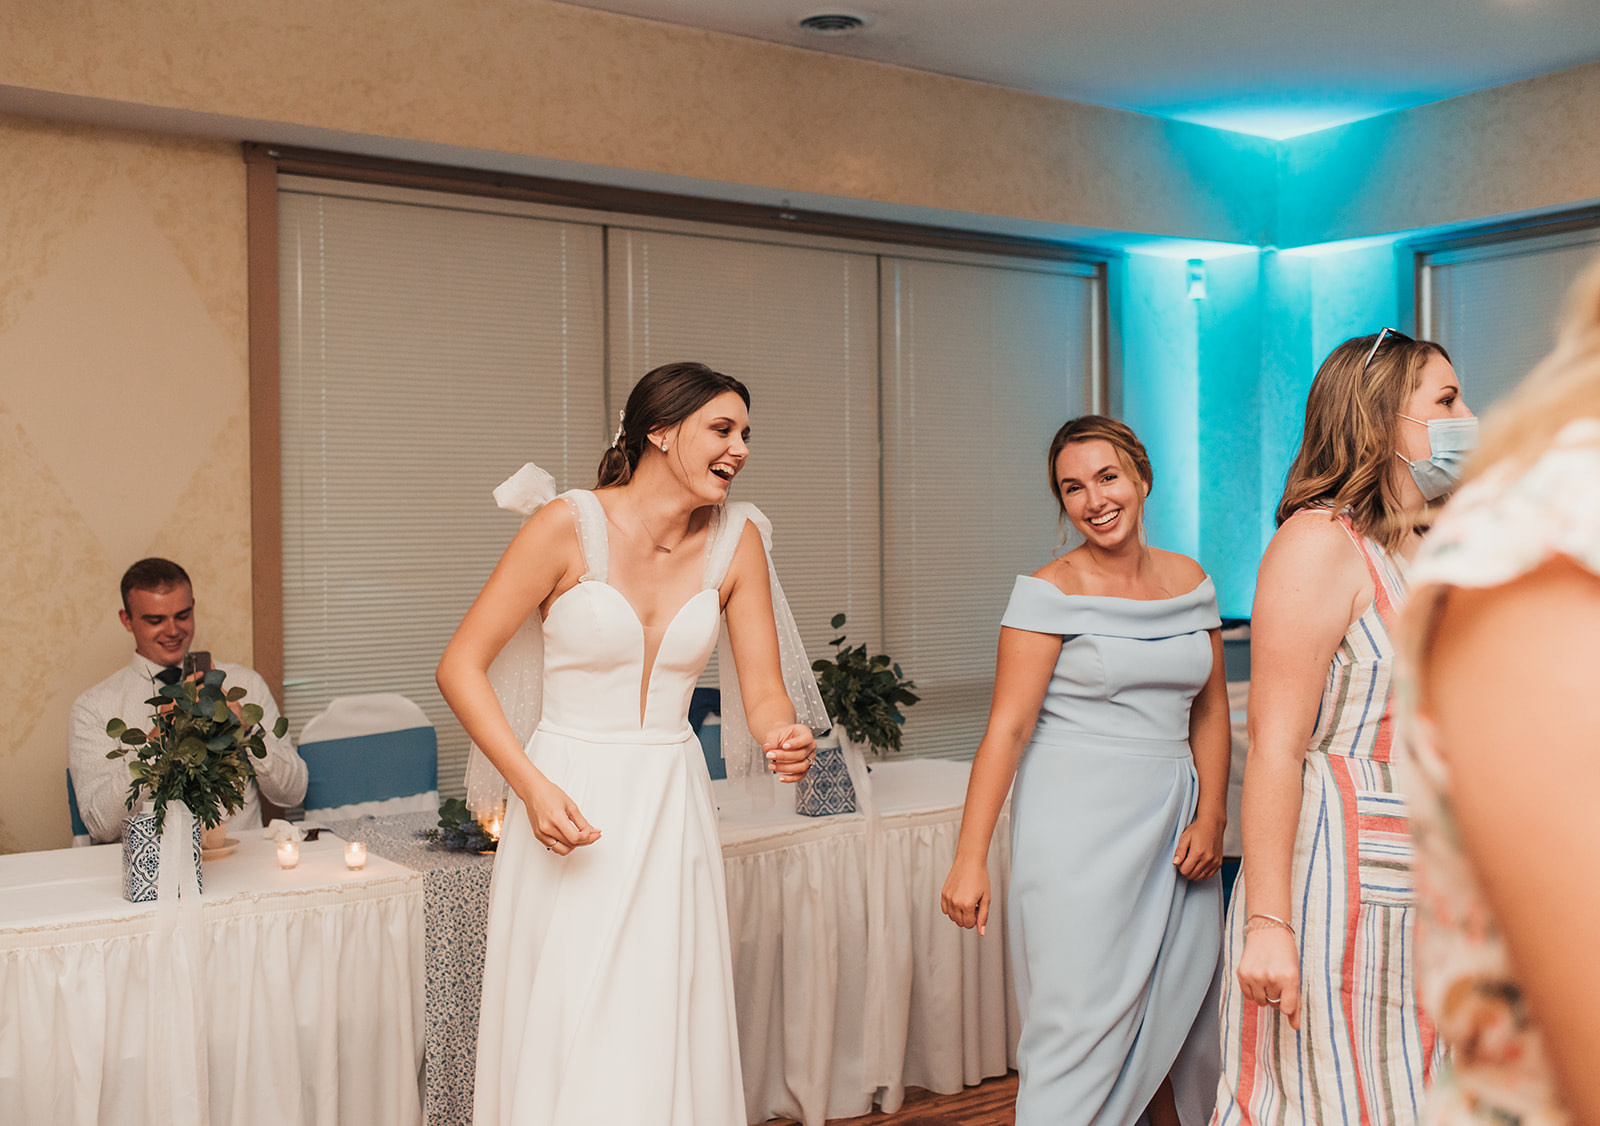 bridal party dancing at a wedding in the bridesmaid dresses with the bride